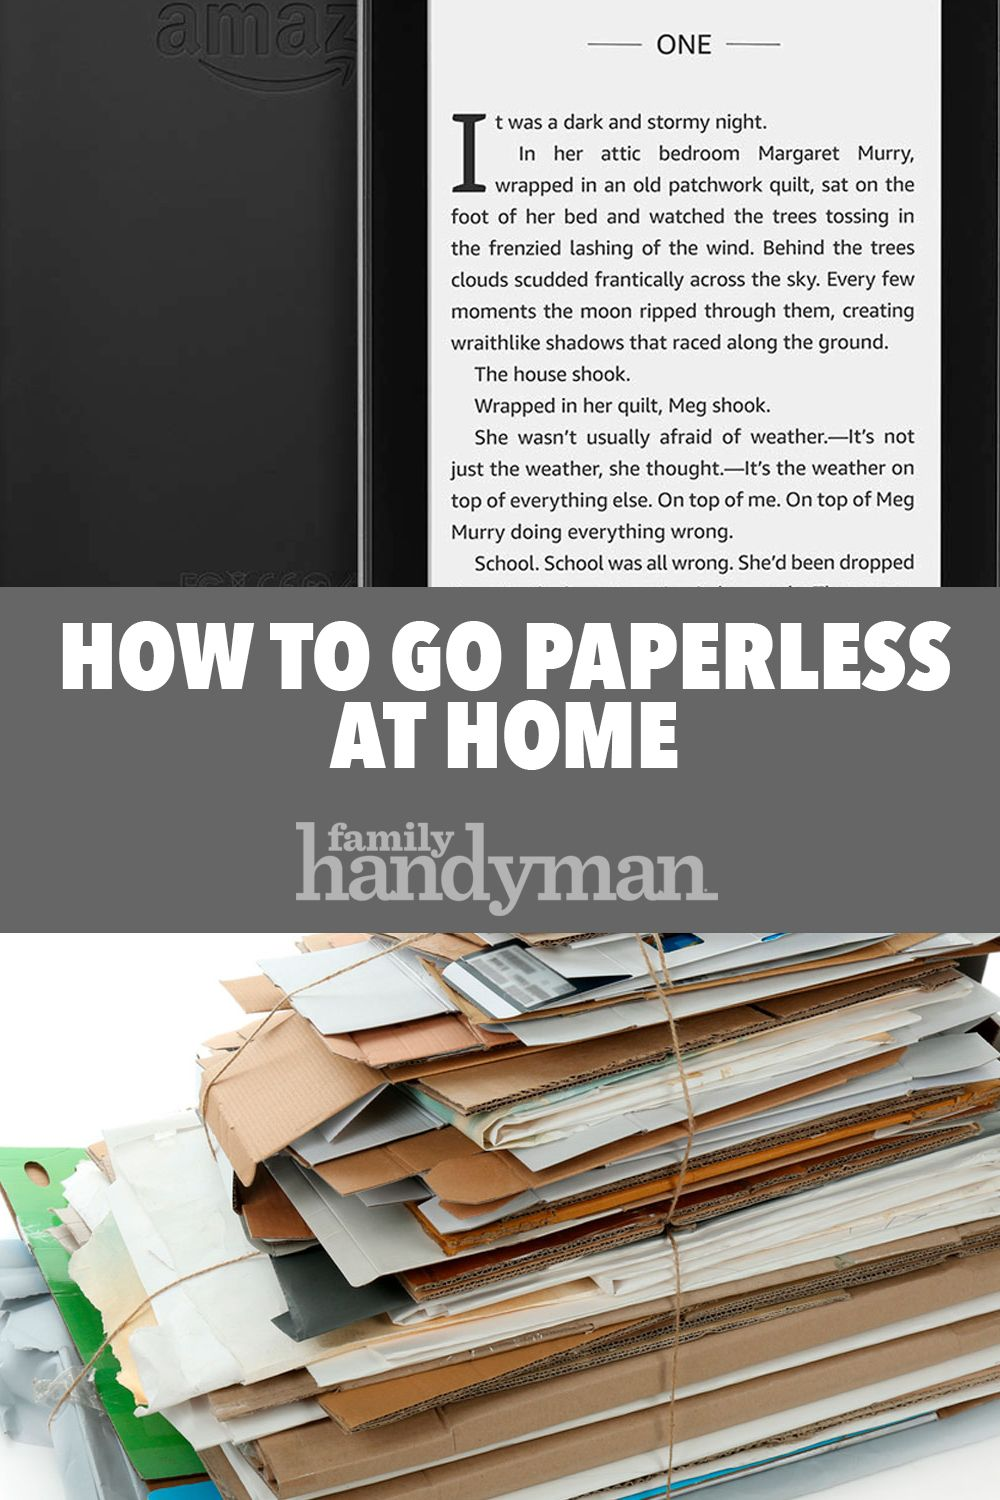 How To Go Paperless At Home